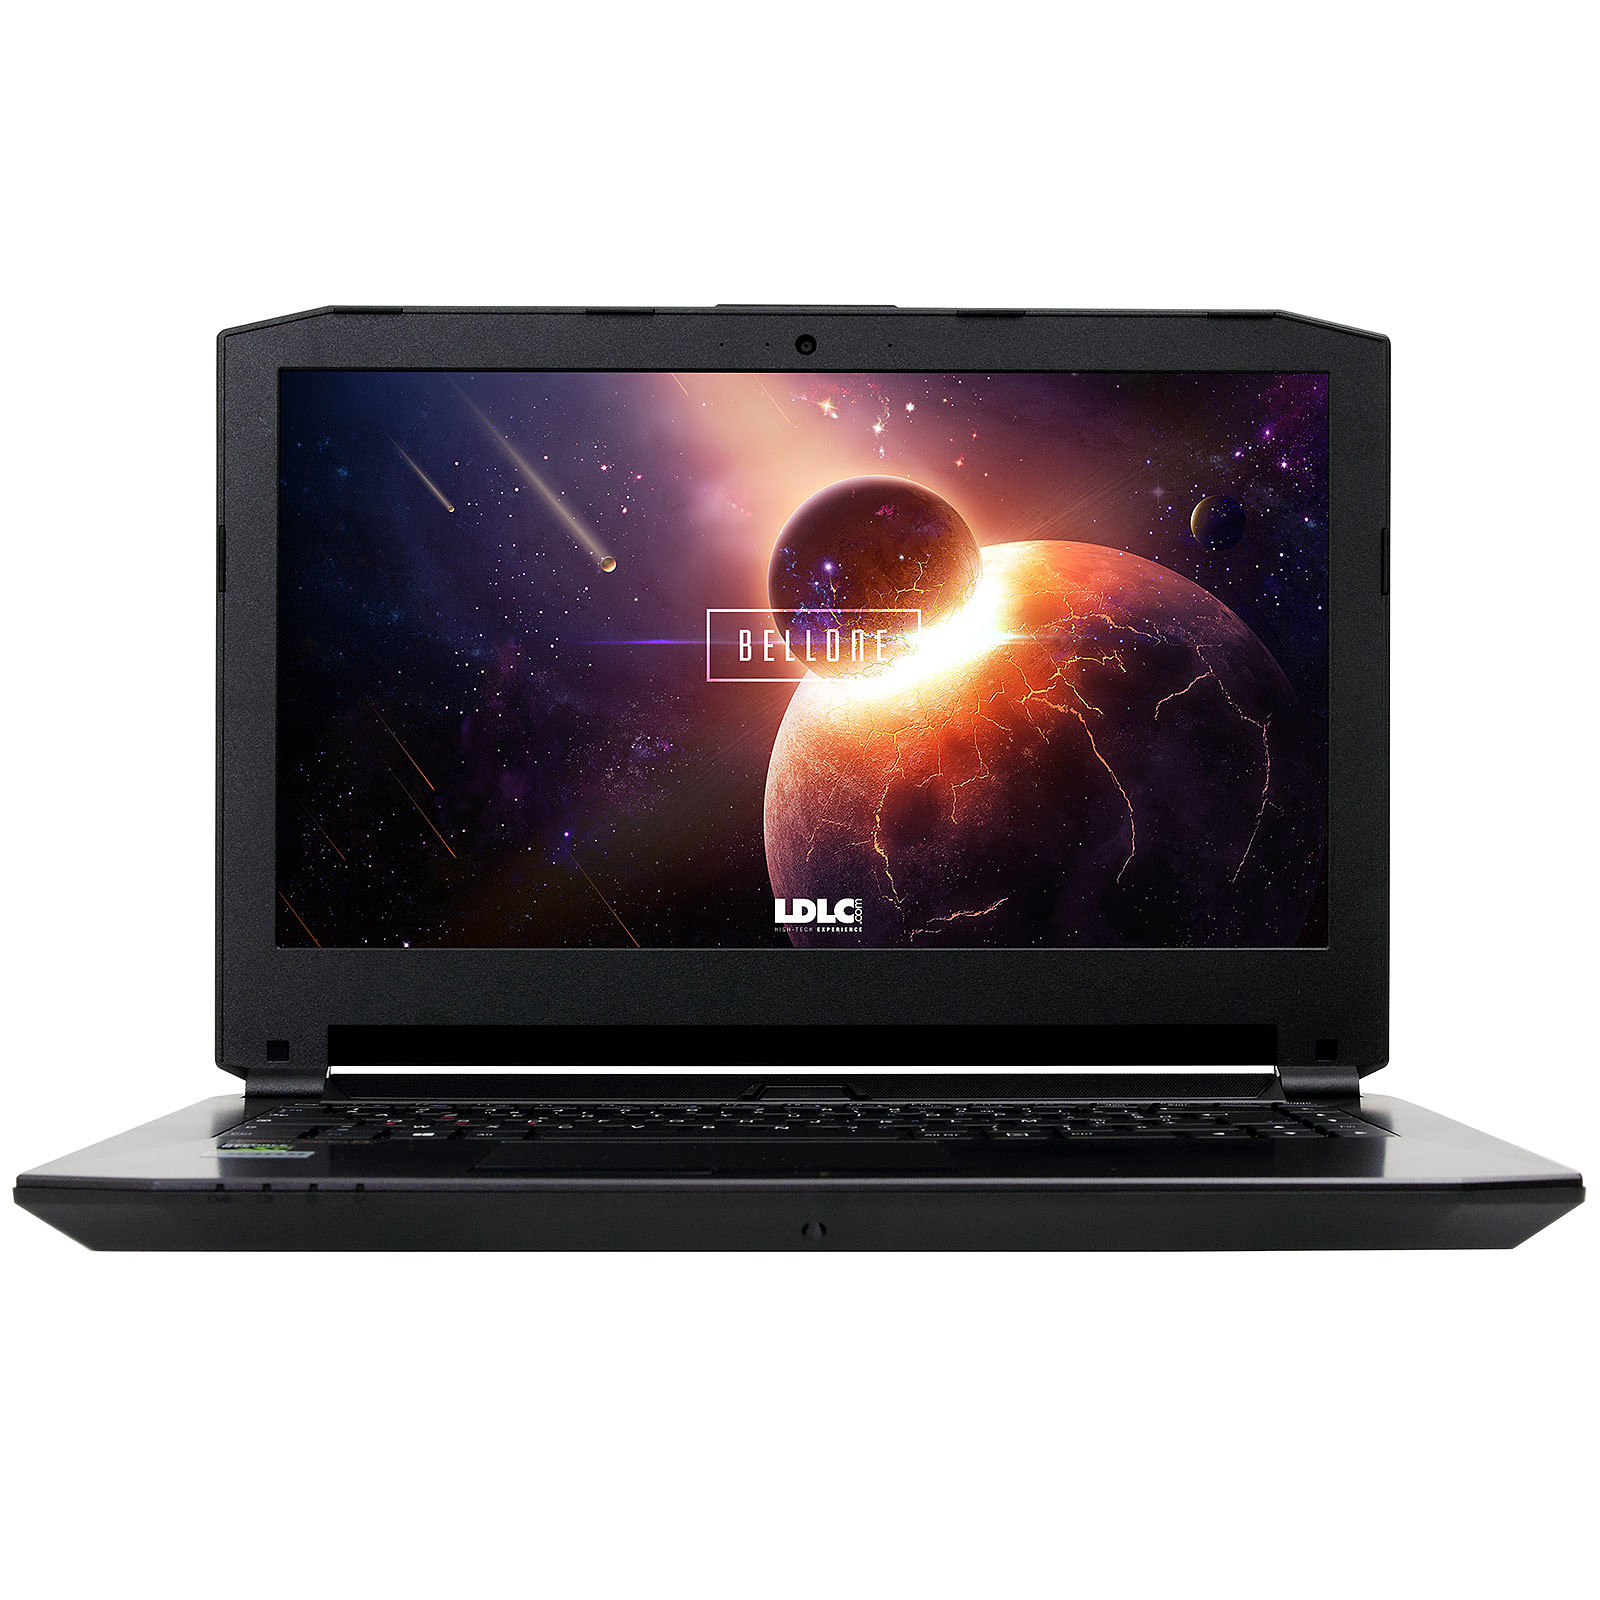 LDLC Bellone S97F-I7-16-H5S2-P10